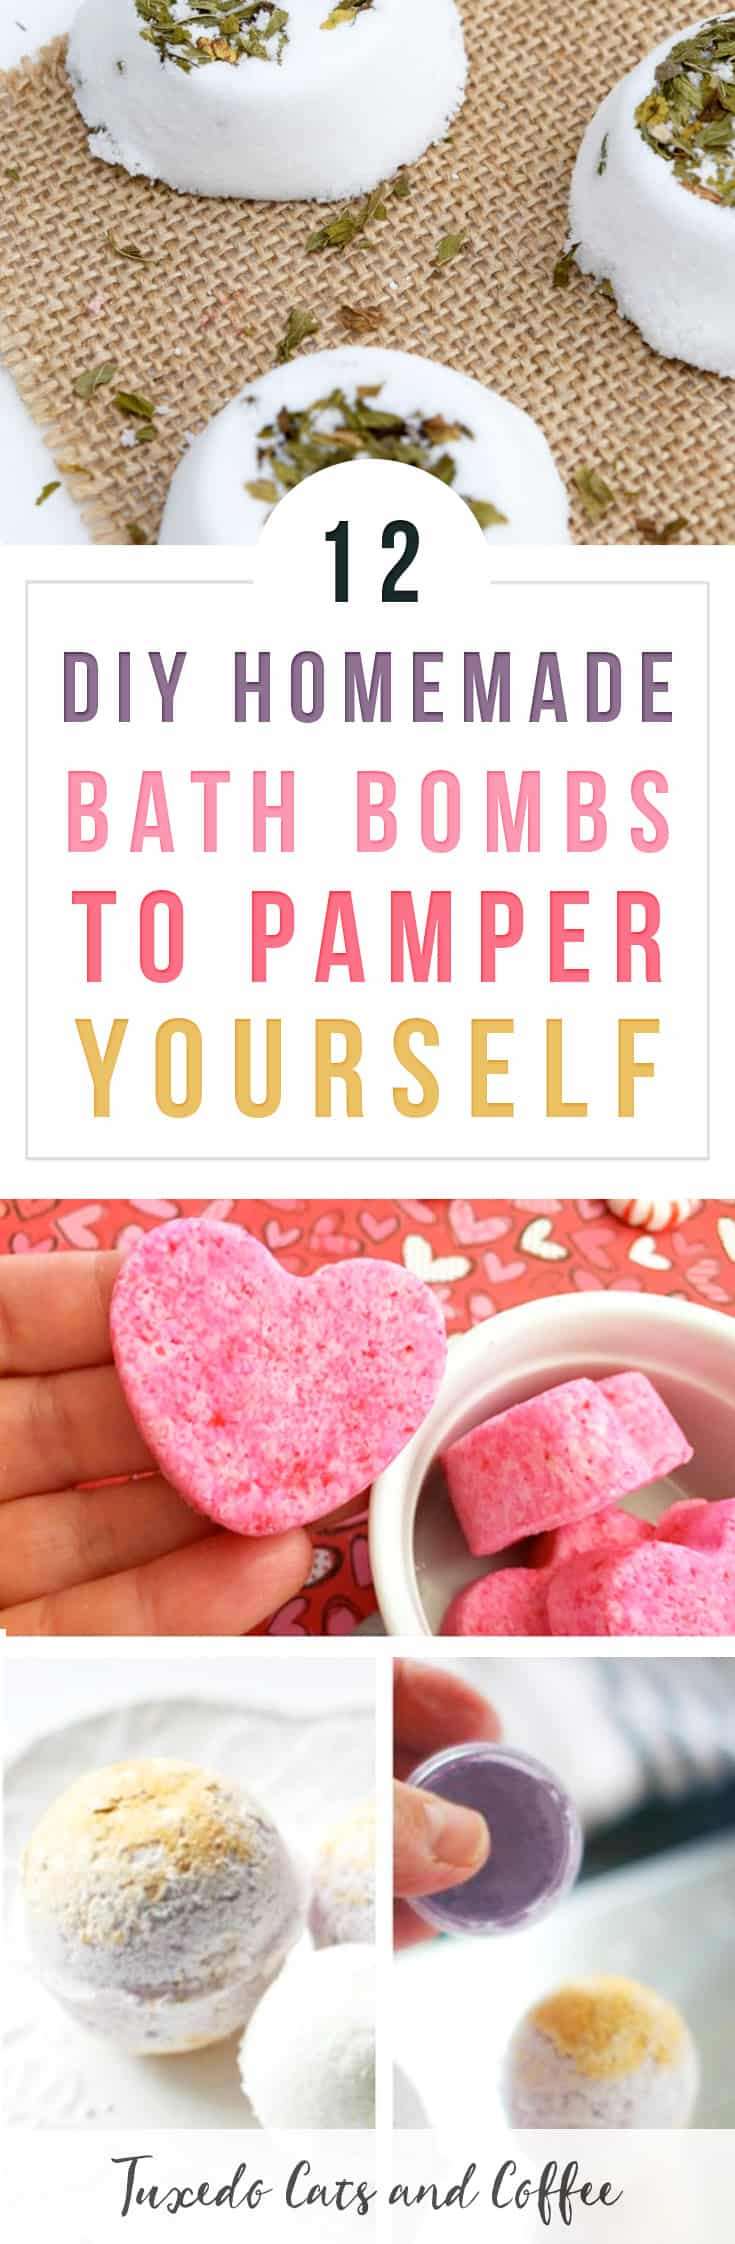 I recently picked up a super cute party cake-themed bath bomb from Target that was yellow and pineapple scented with rainbow sprinkles on top. Super cute! Did you know you can actually make your own bath bombs at home with just a few ingredients? Here's how to make 12 DIY homemade bath bombs to pamper yourself, or how to make homemade DIY Lush bath bombs.